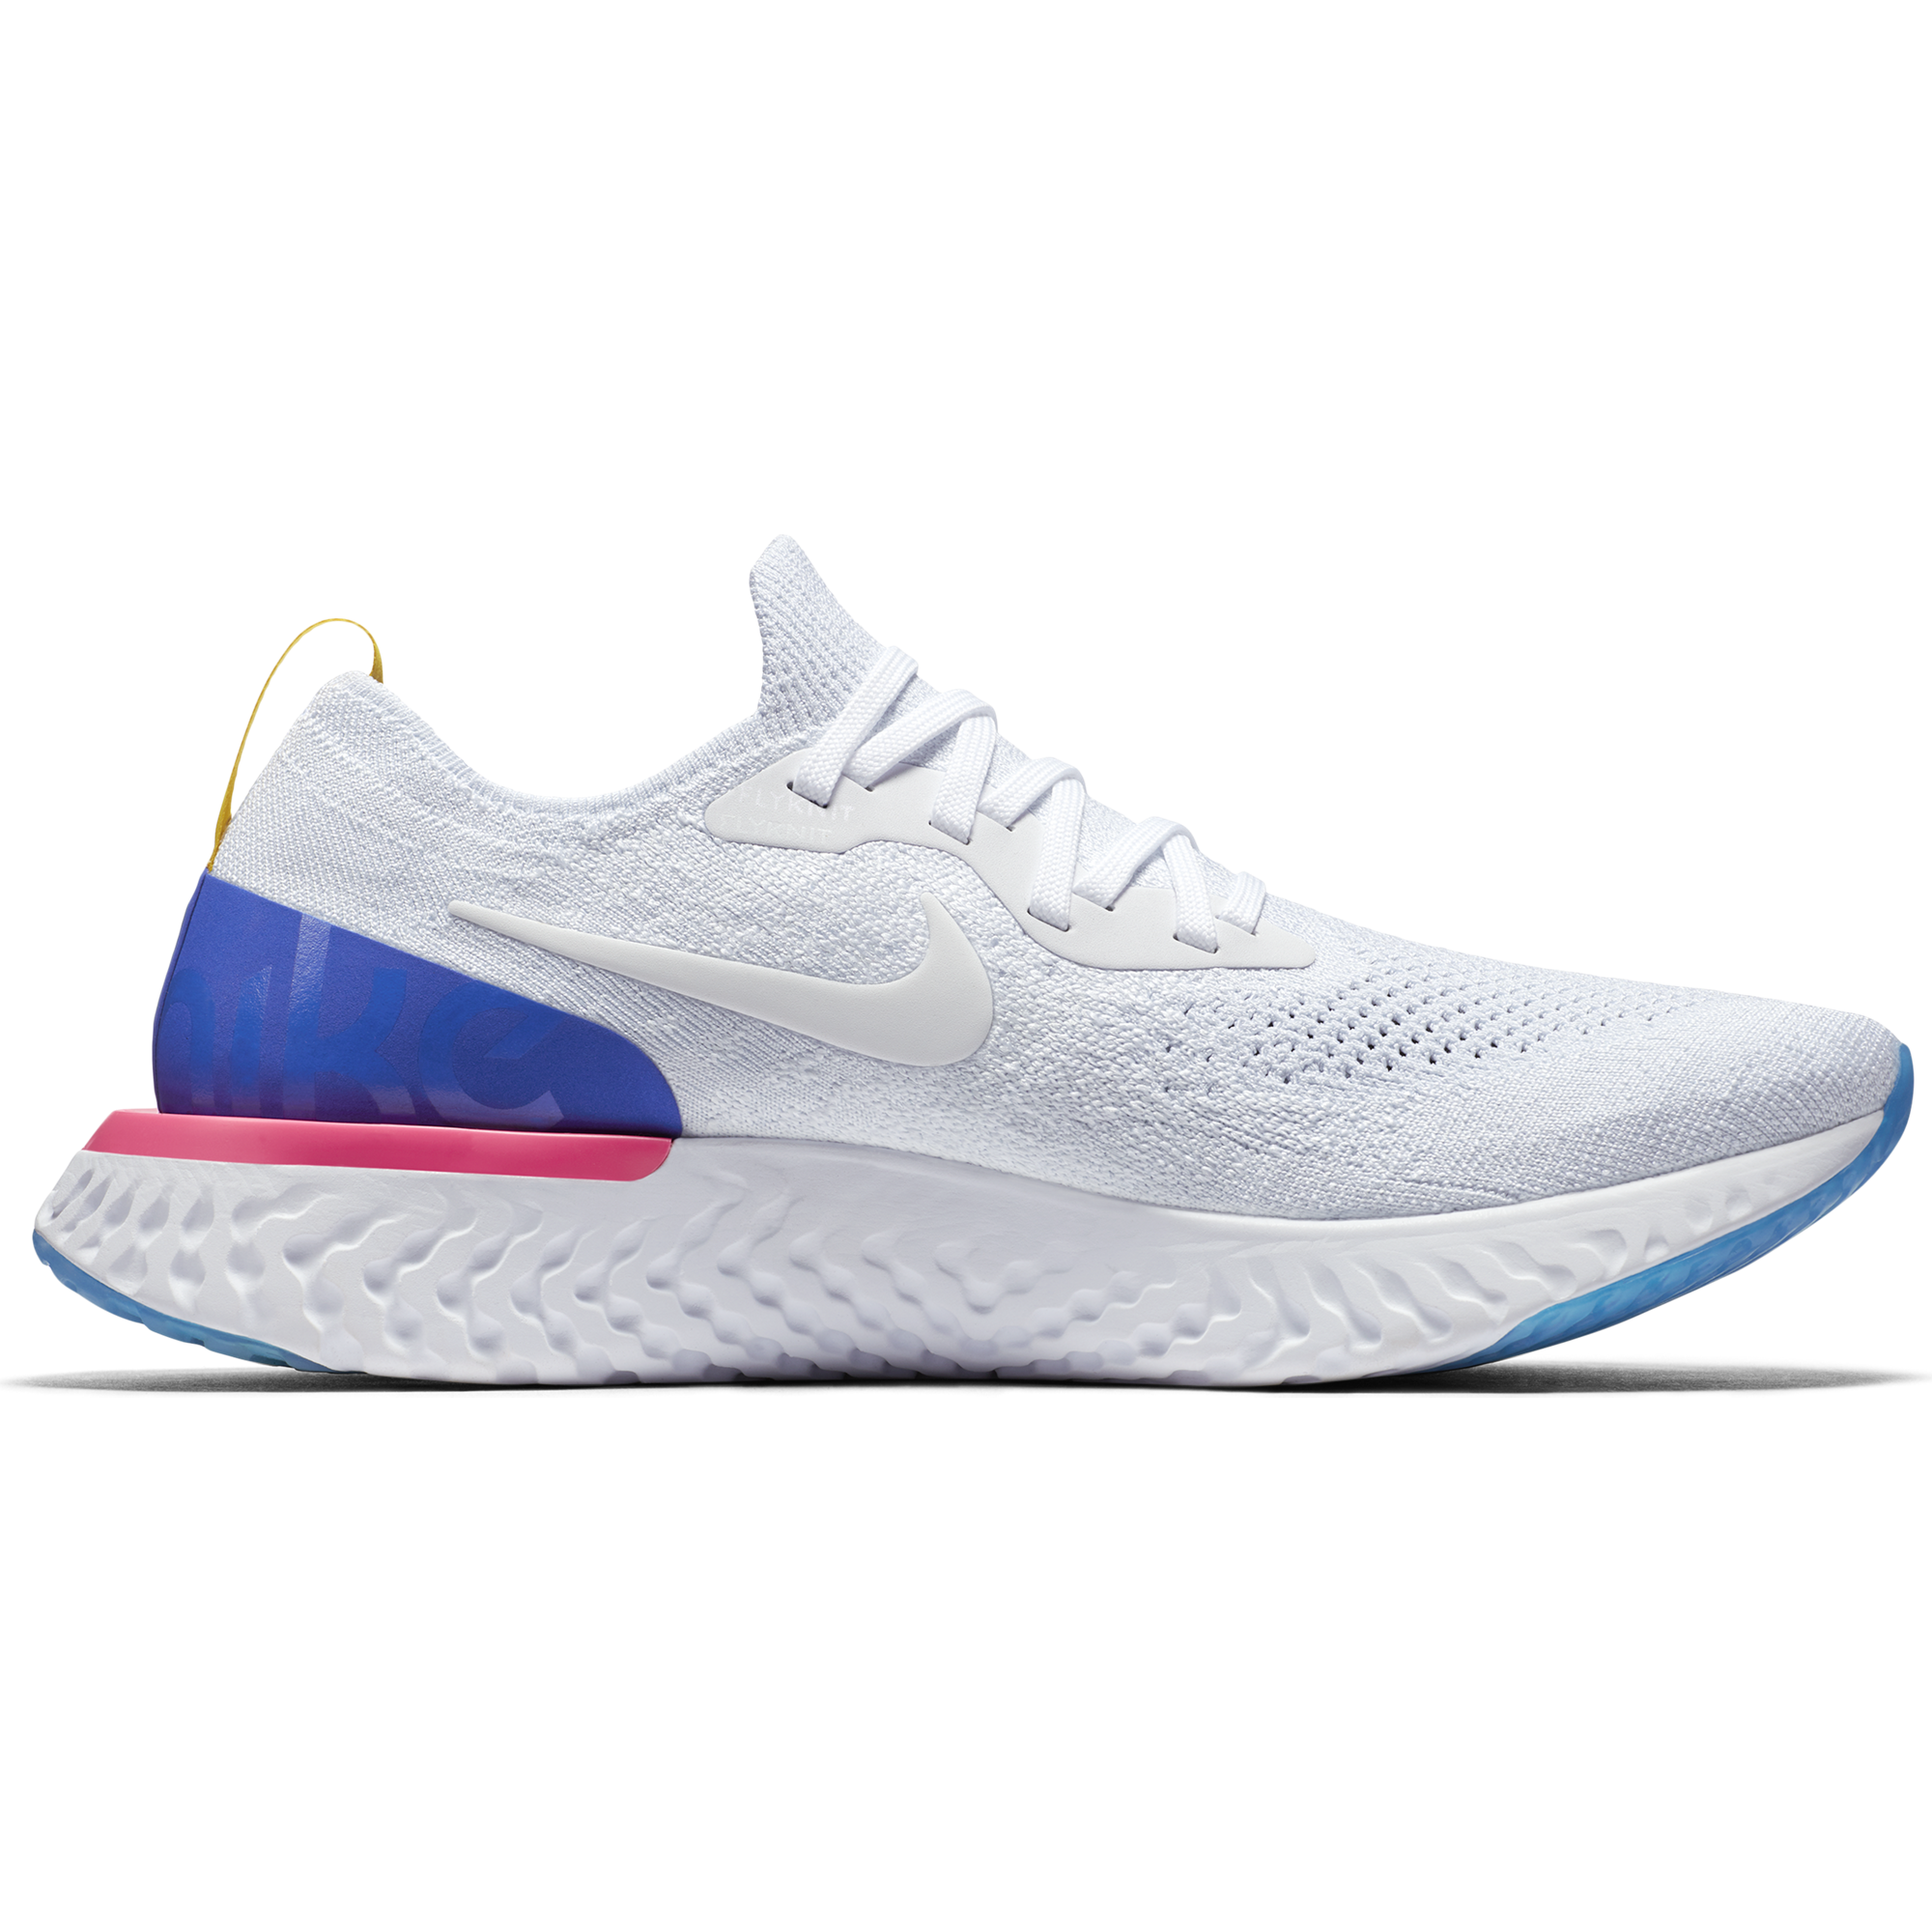 buy popular 3159e 41291 ... Men s Epic React Flyknit Running Shoe - White White Racer Blue Pink  Blast ...